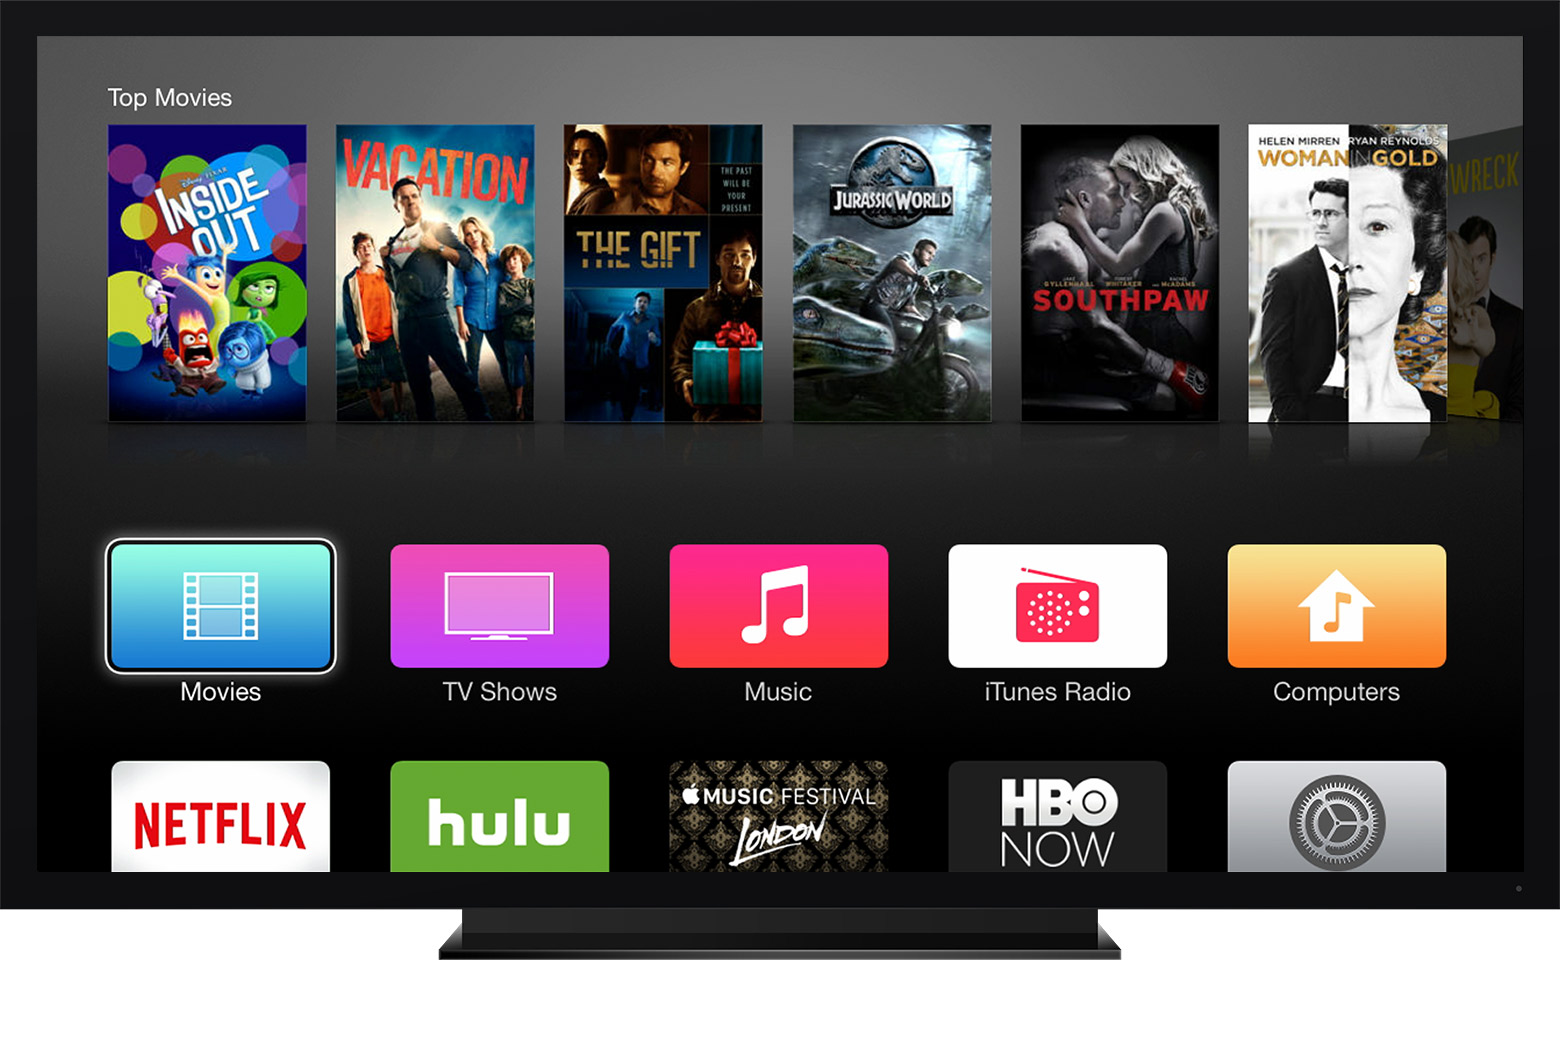 Cancel Subscription on Apple TV - How To